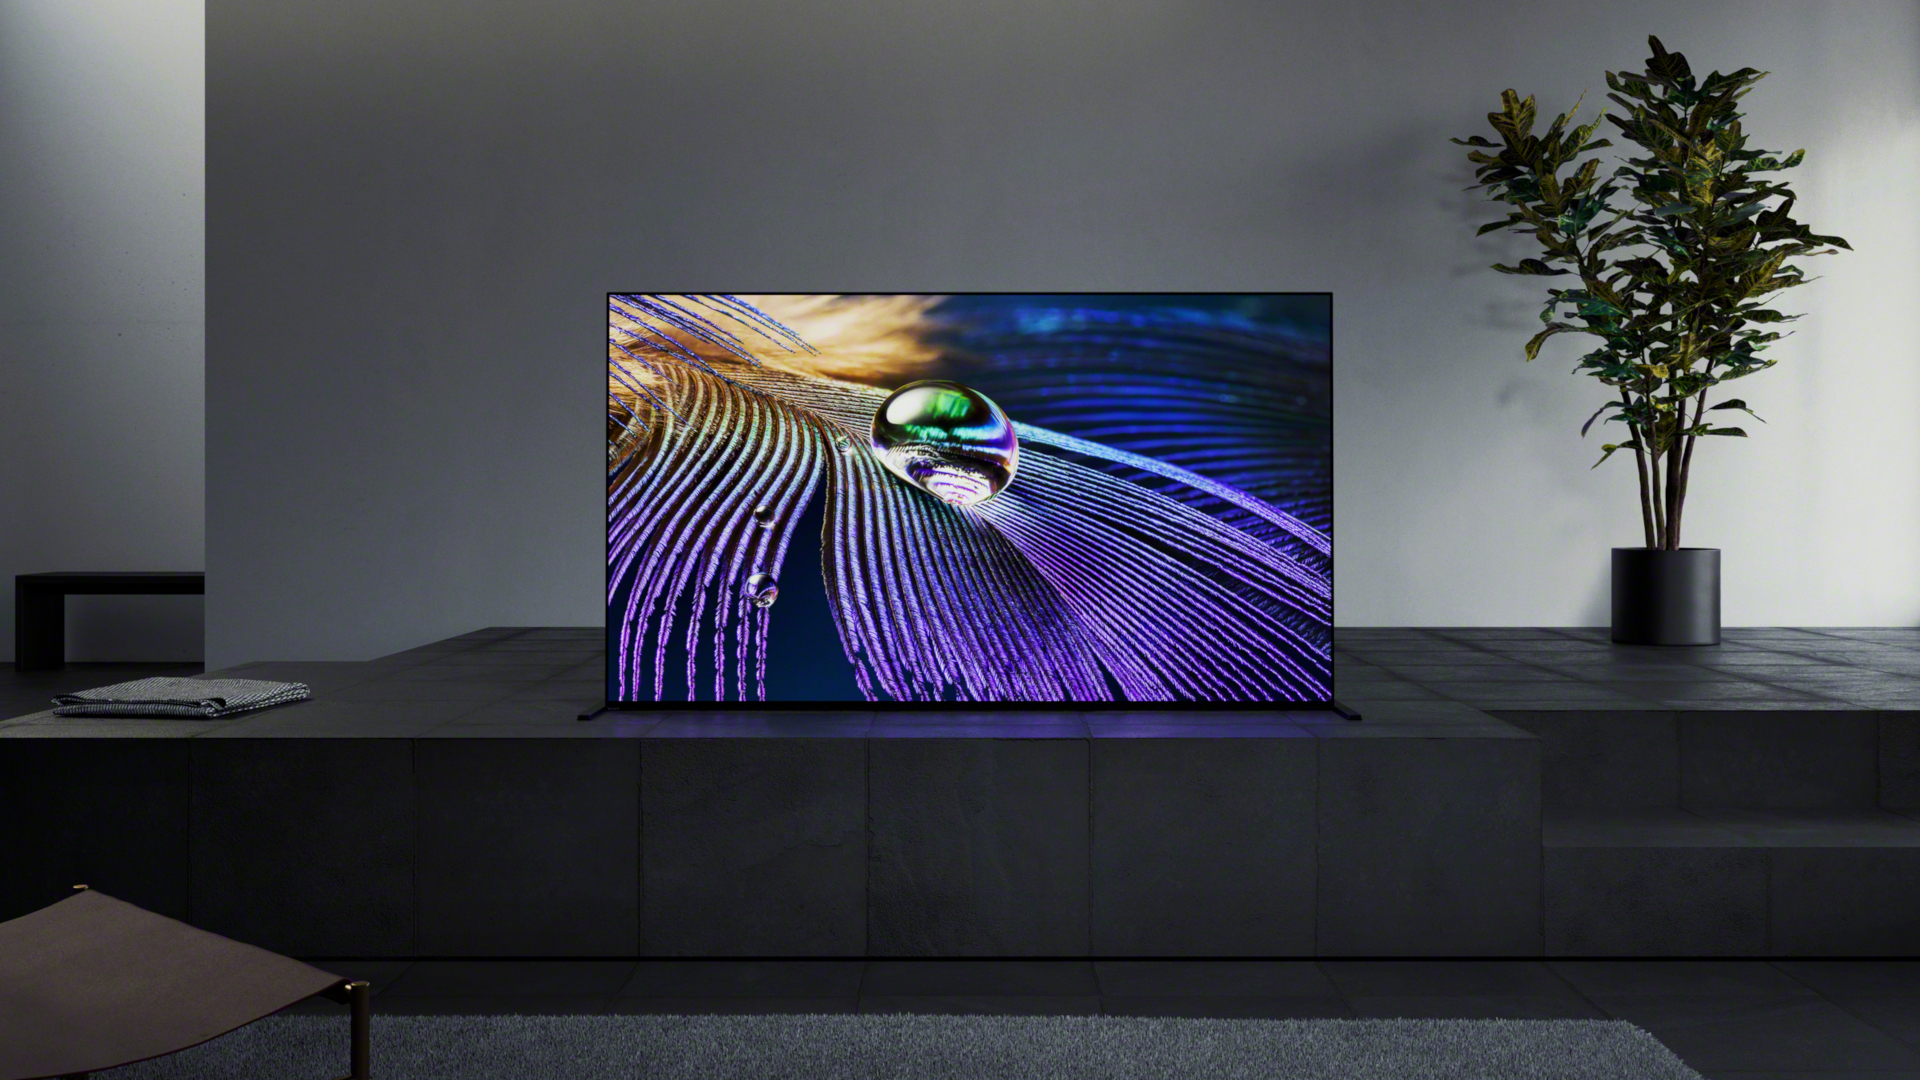 Sony OLED with purple screen